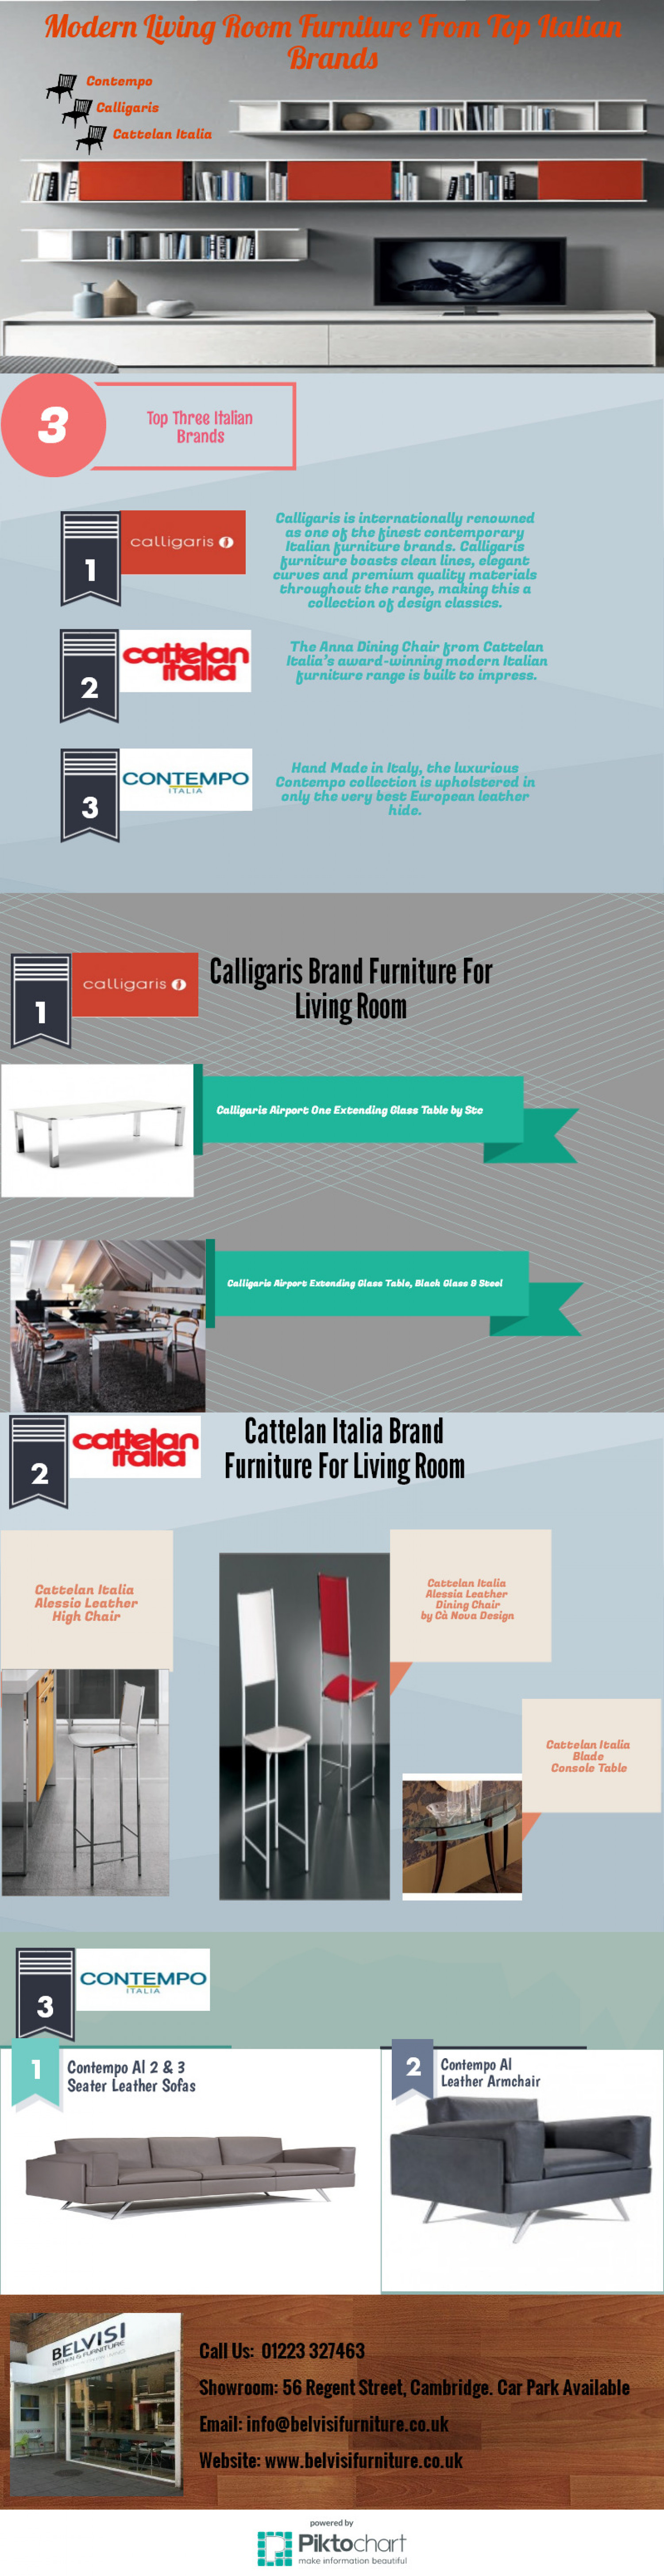 modern living room furniture from top italian brands